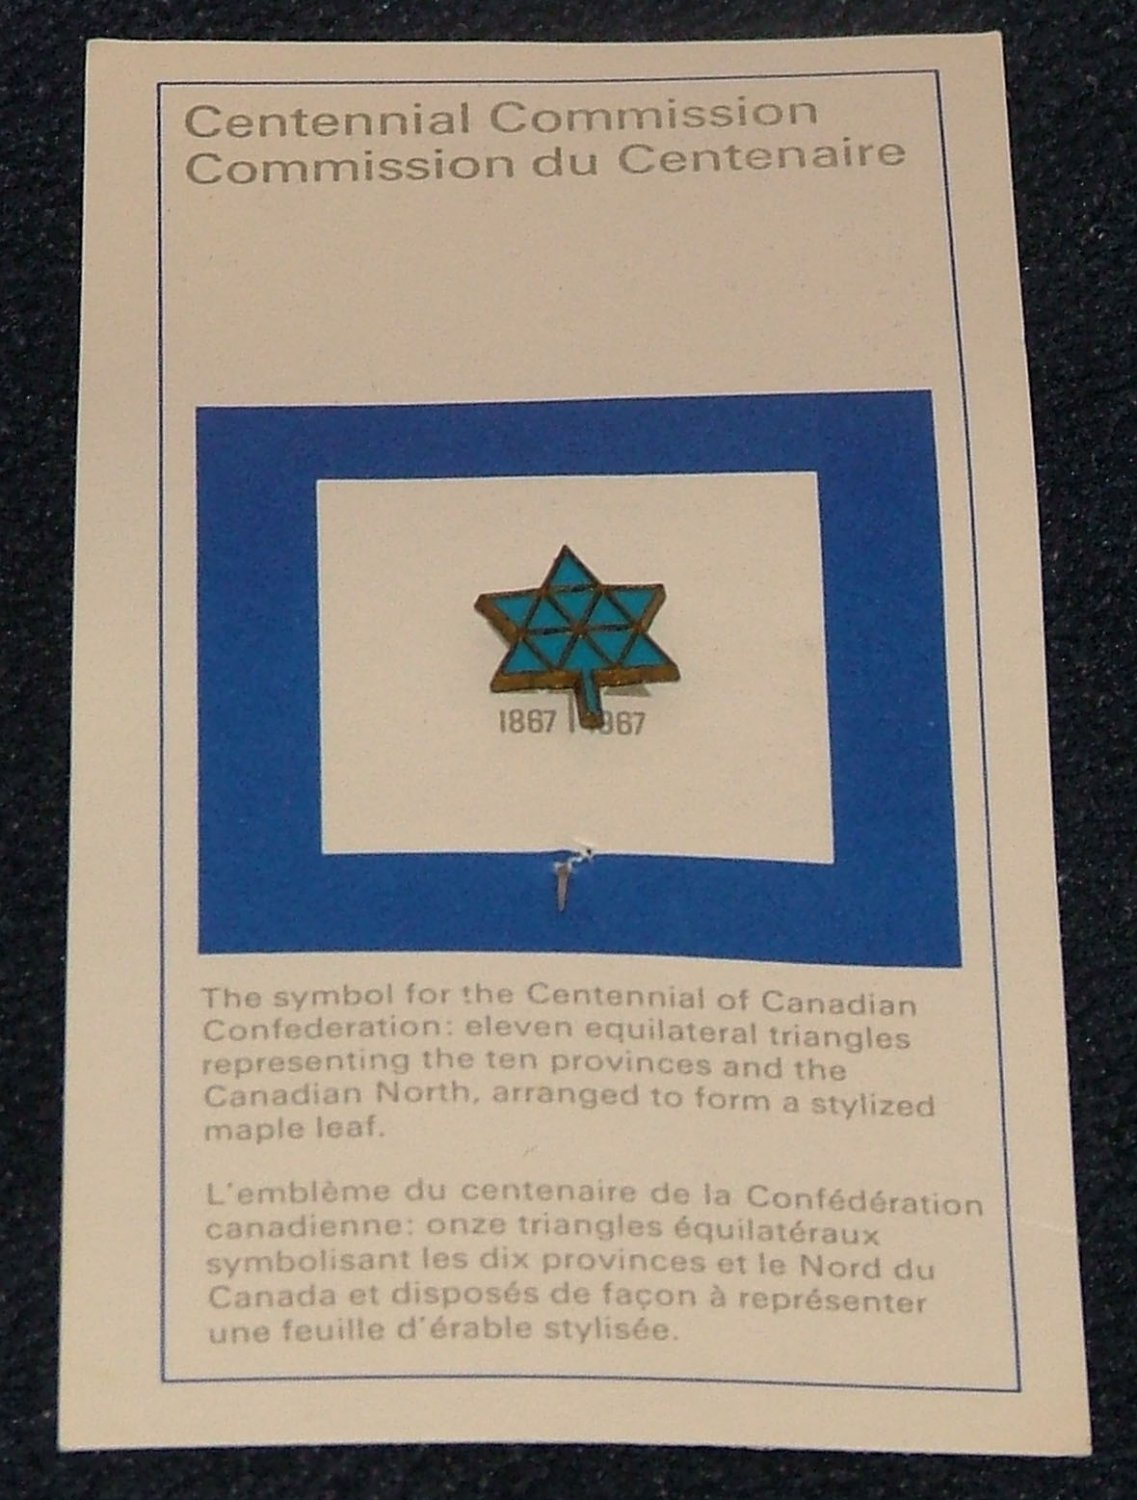 Vintage 1887 - 1967 Canada Centennial Commission Confederation Pin